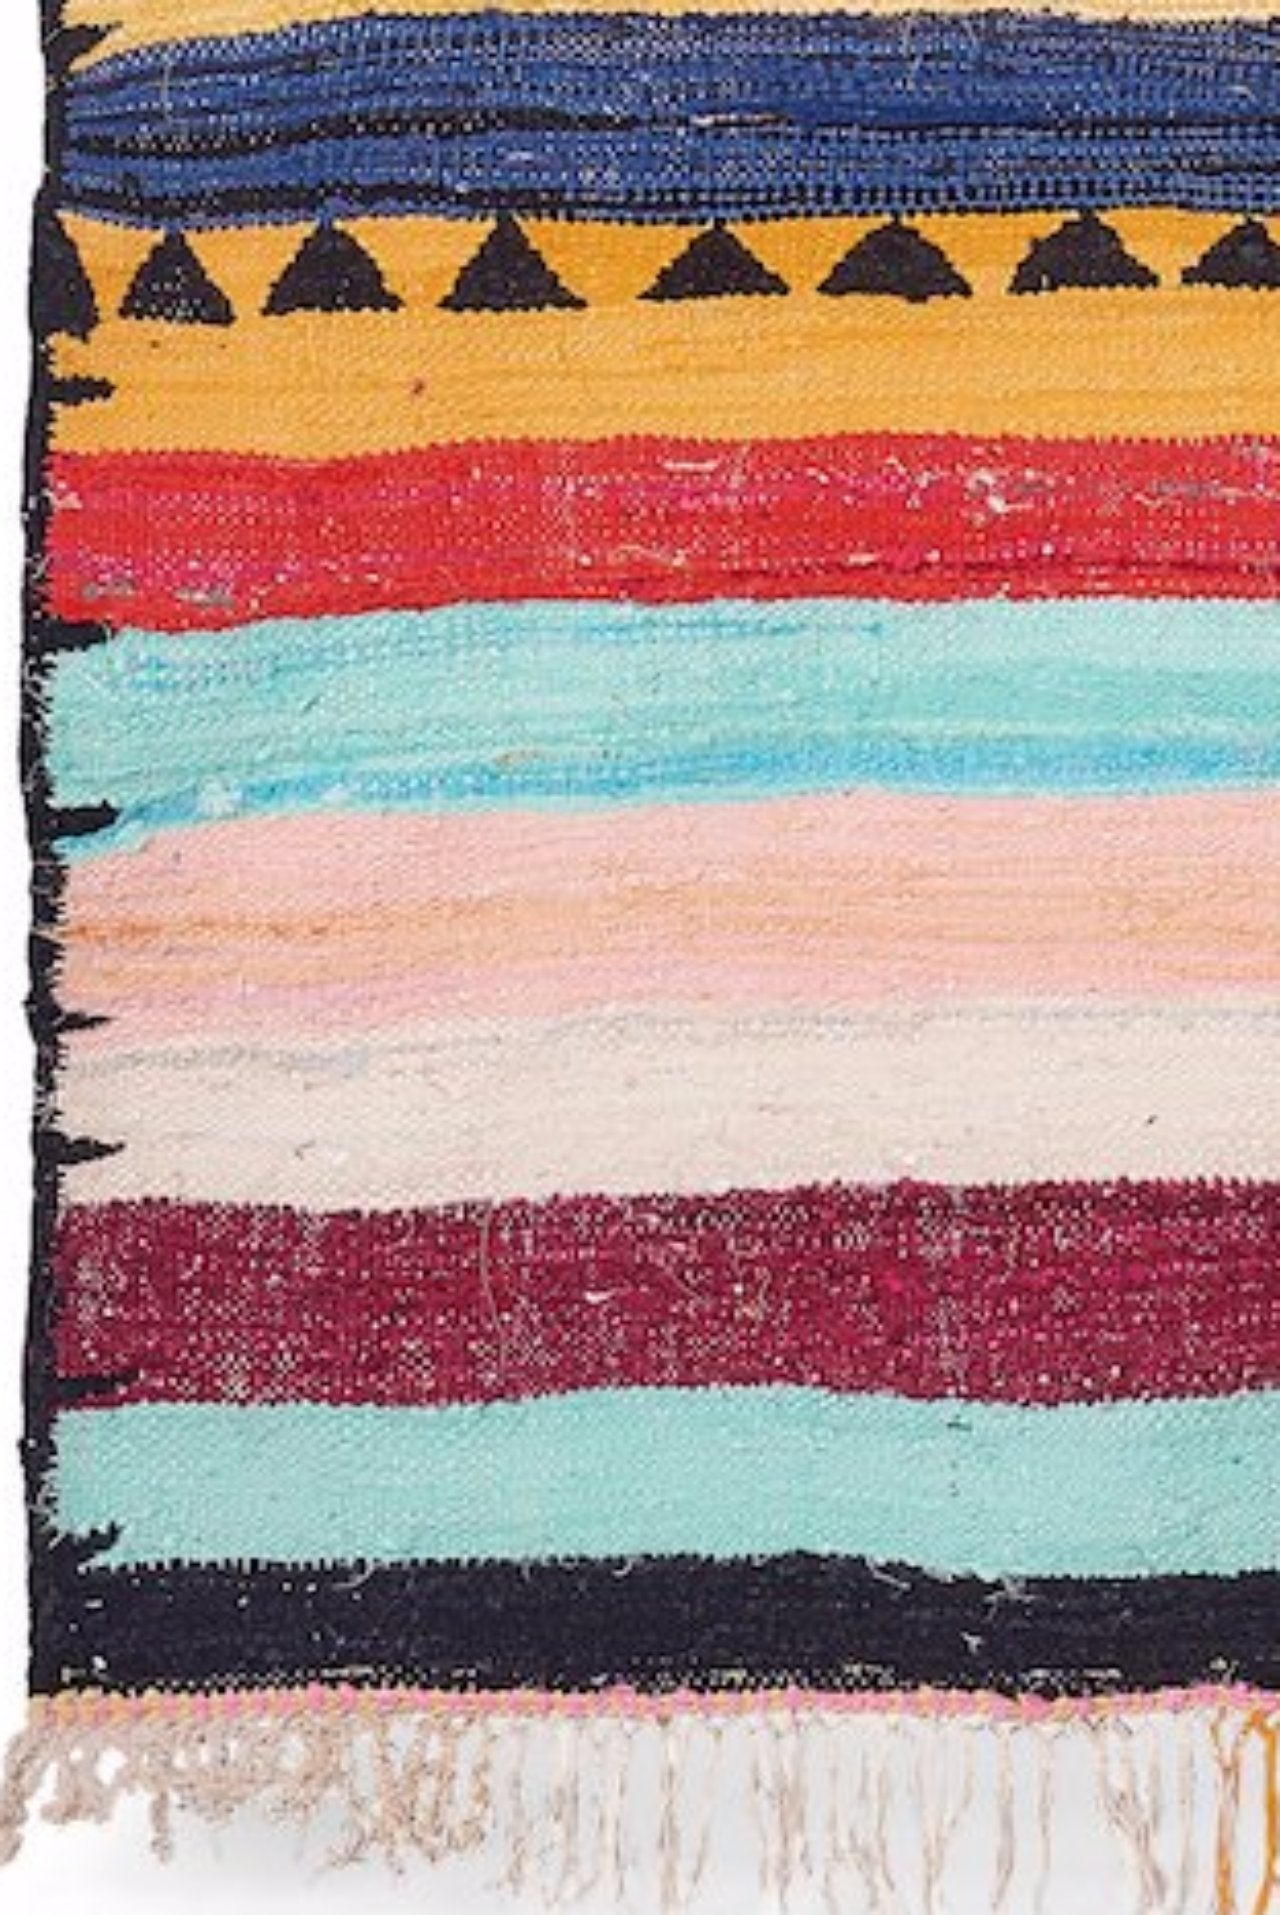 Vintage Moroccan Colorful Striped Hand Woven Flat Rug 10x5